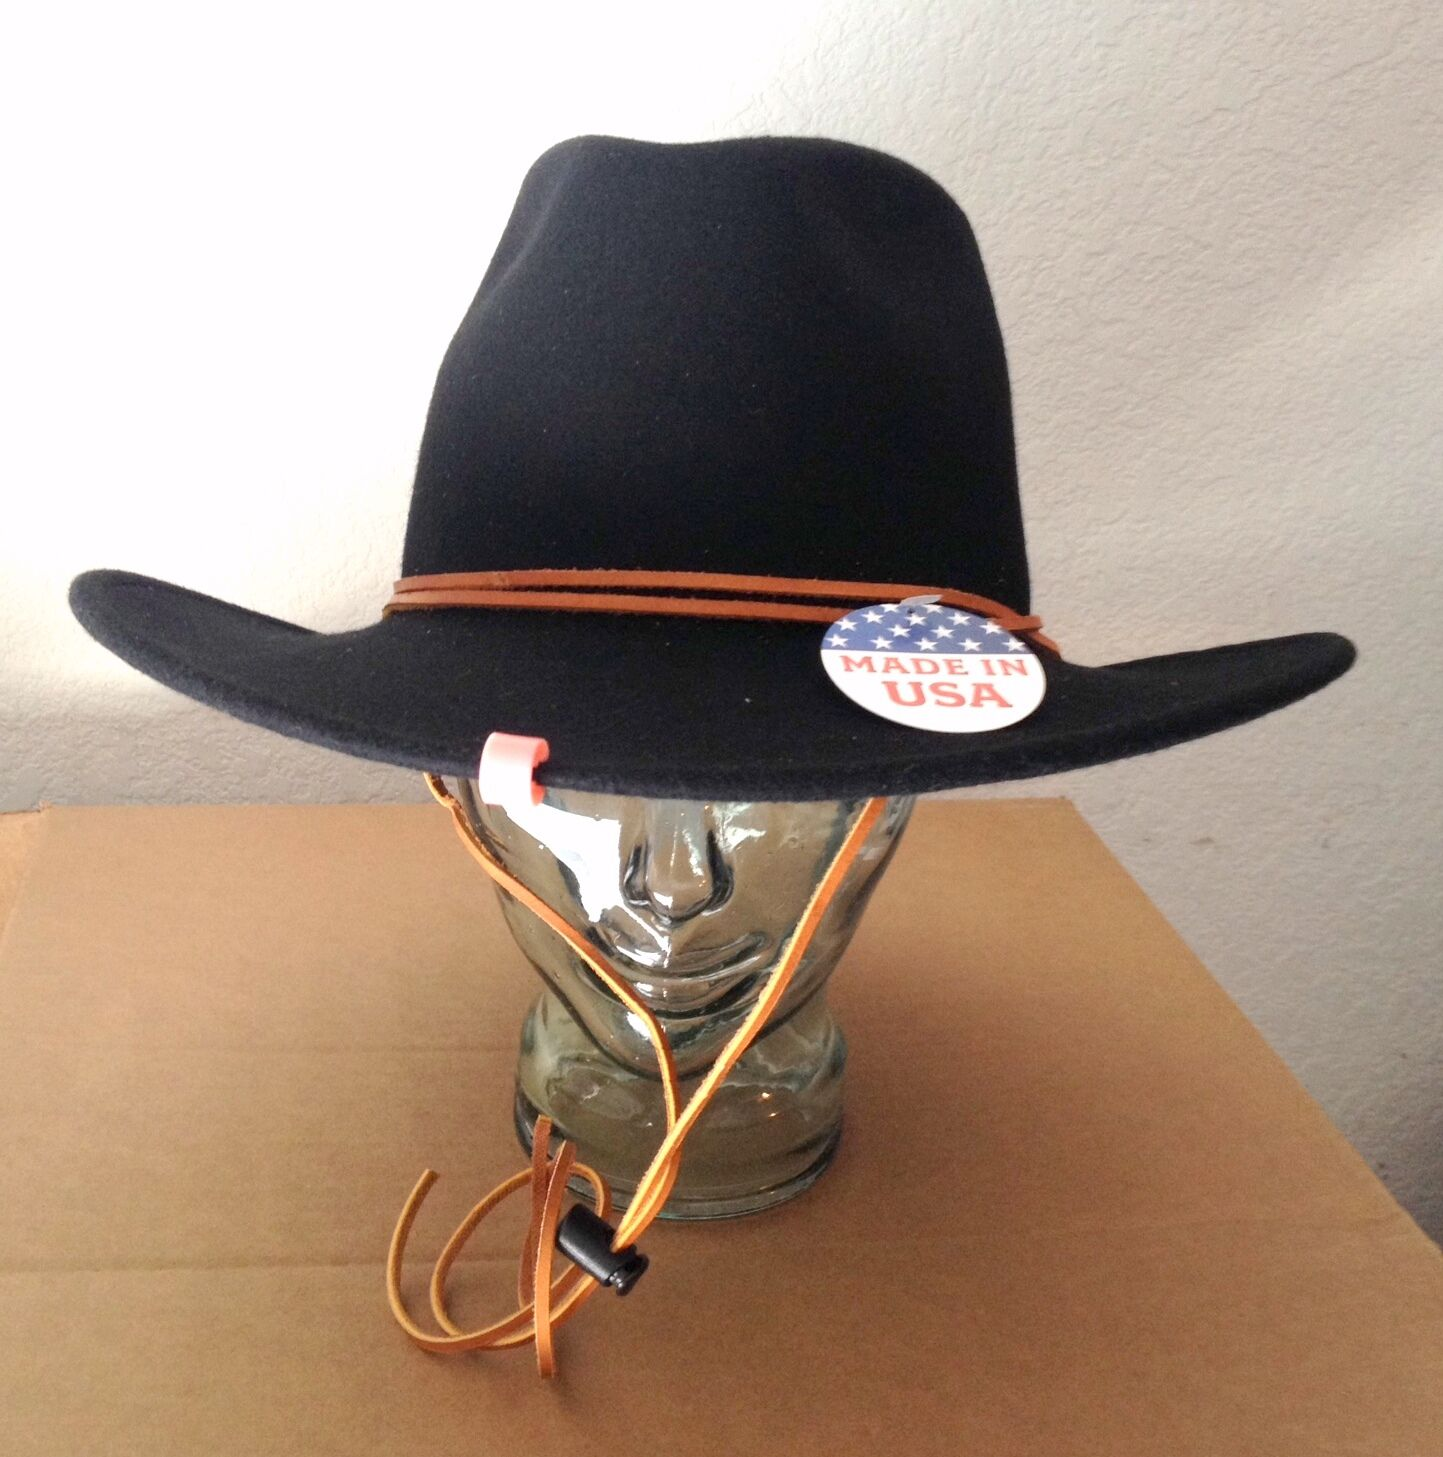 Stetson Water - Repellent Crushable Hat  - Water ALTON - Ear Flaps -  Black - Size L aa82f8